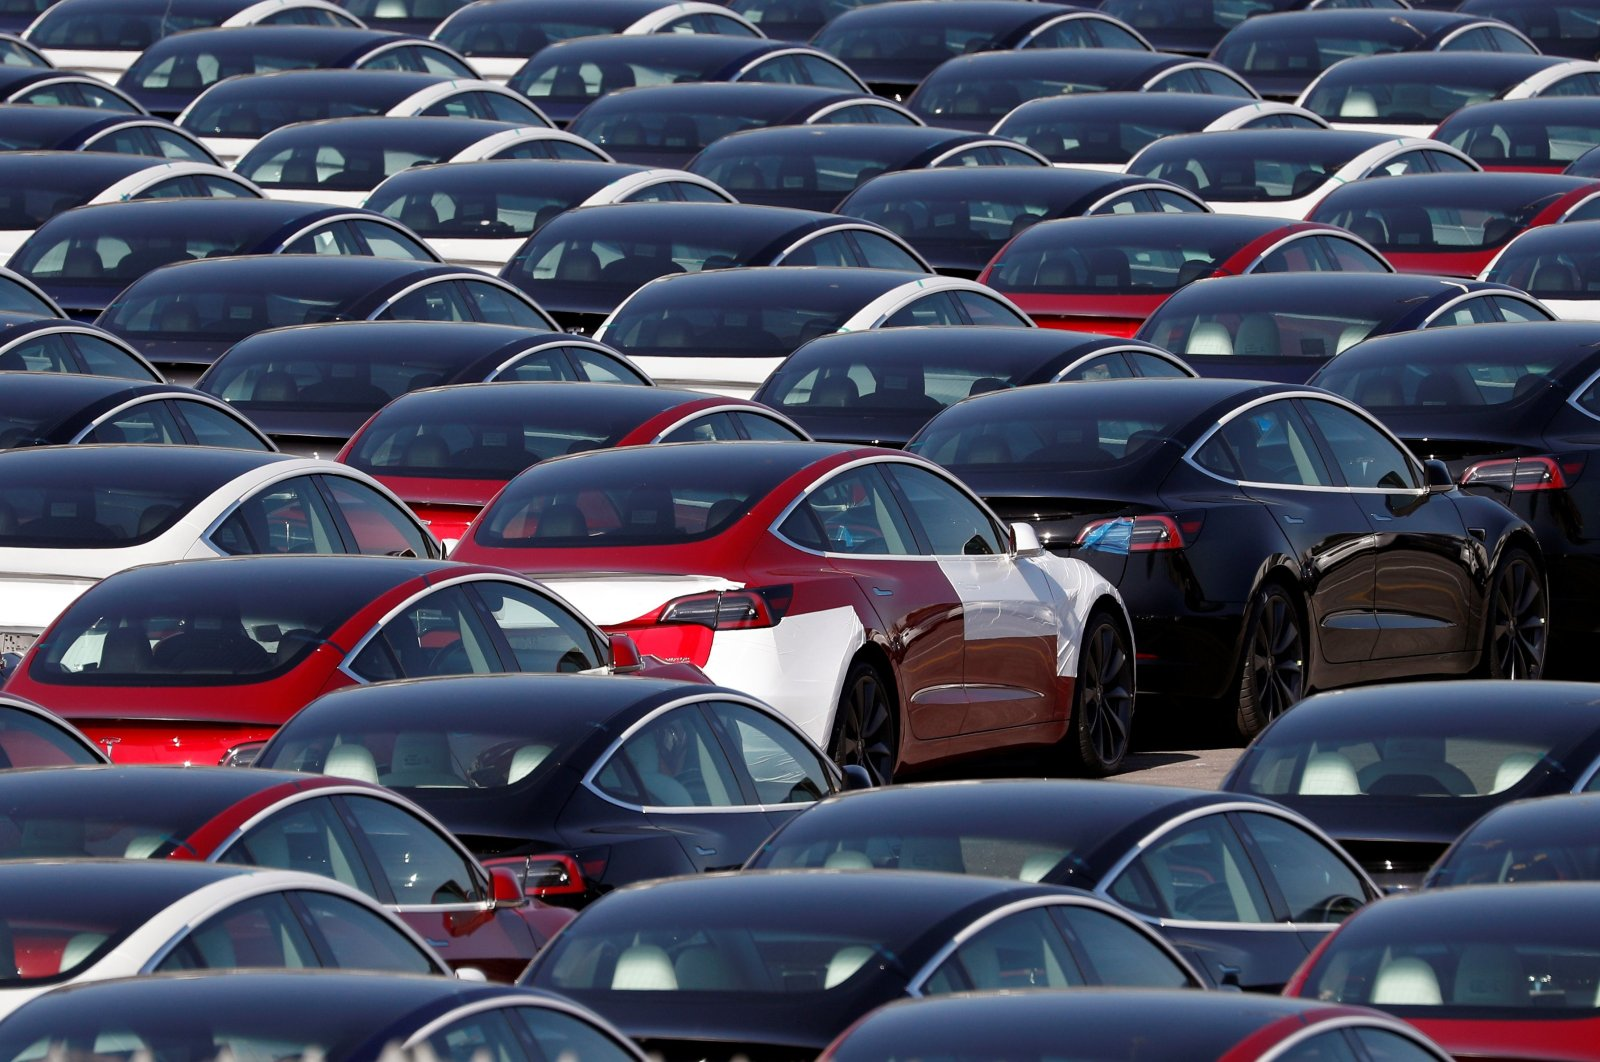 Newly manufactured Tesla electric cars are pictured in a storage area at The Western Docks during coronavirus outbreak, Southampton, England, April 20, 2020. (AFP Photo)